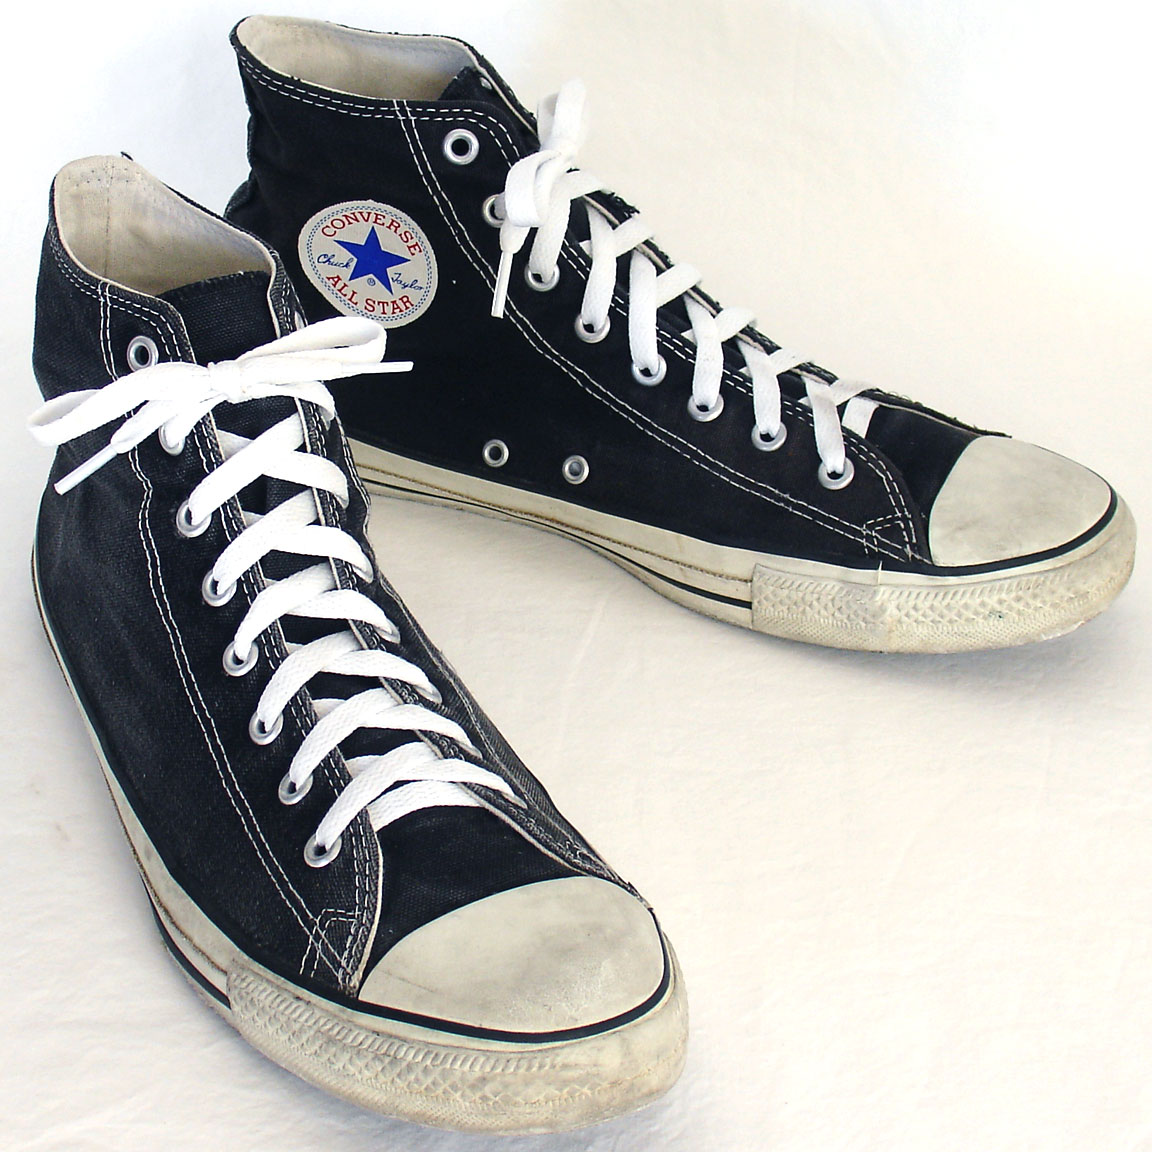 d5686753fc50 Vintage American-made Converse All Star Chuck Taylor black hi-top shoes for  sale